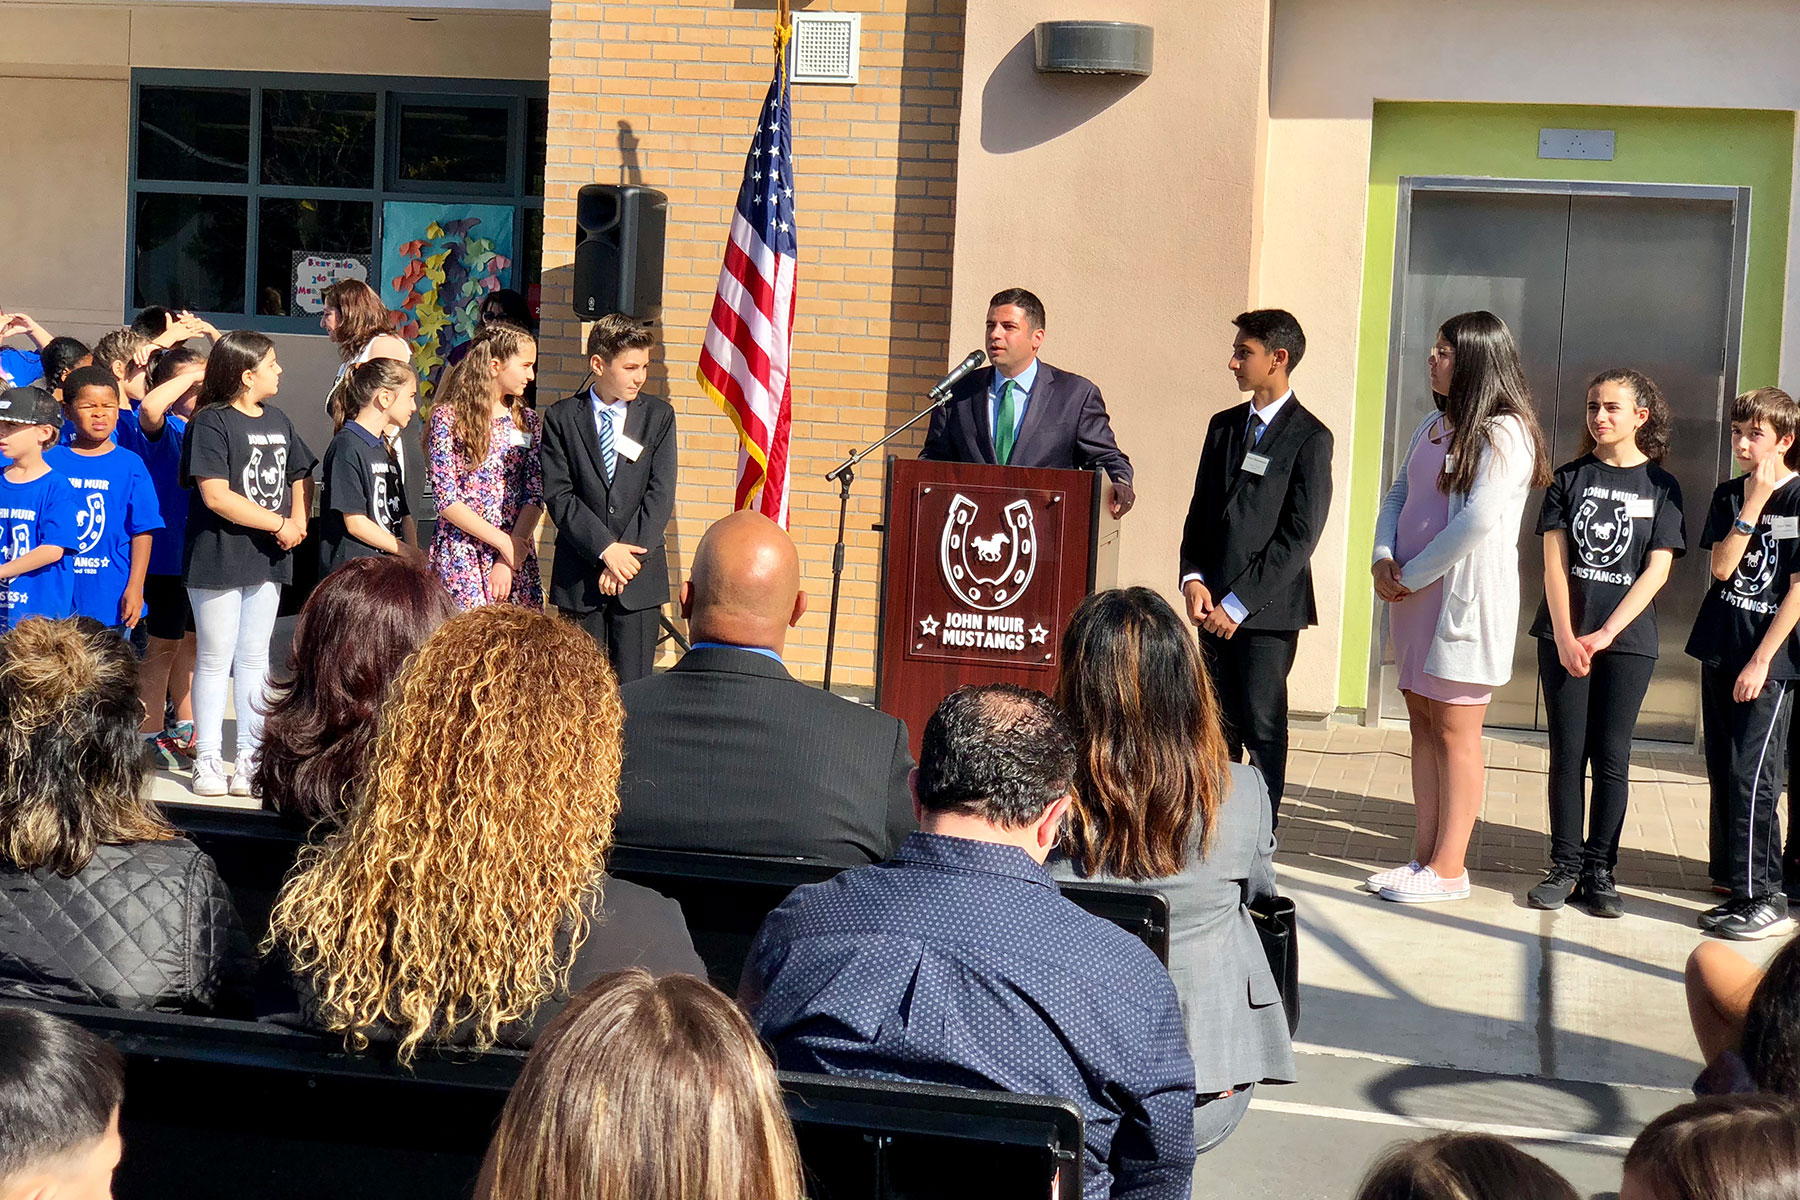 Muir Elementary School Measure S Ribbon Cutting Ceremony April 2018